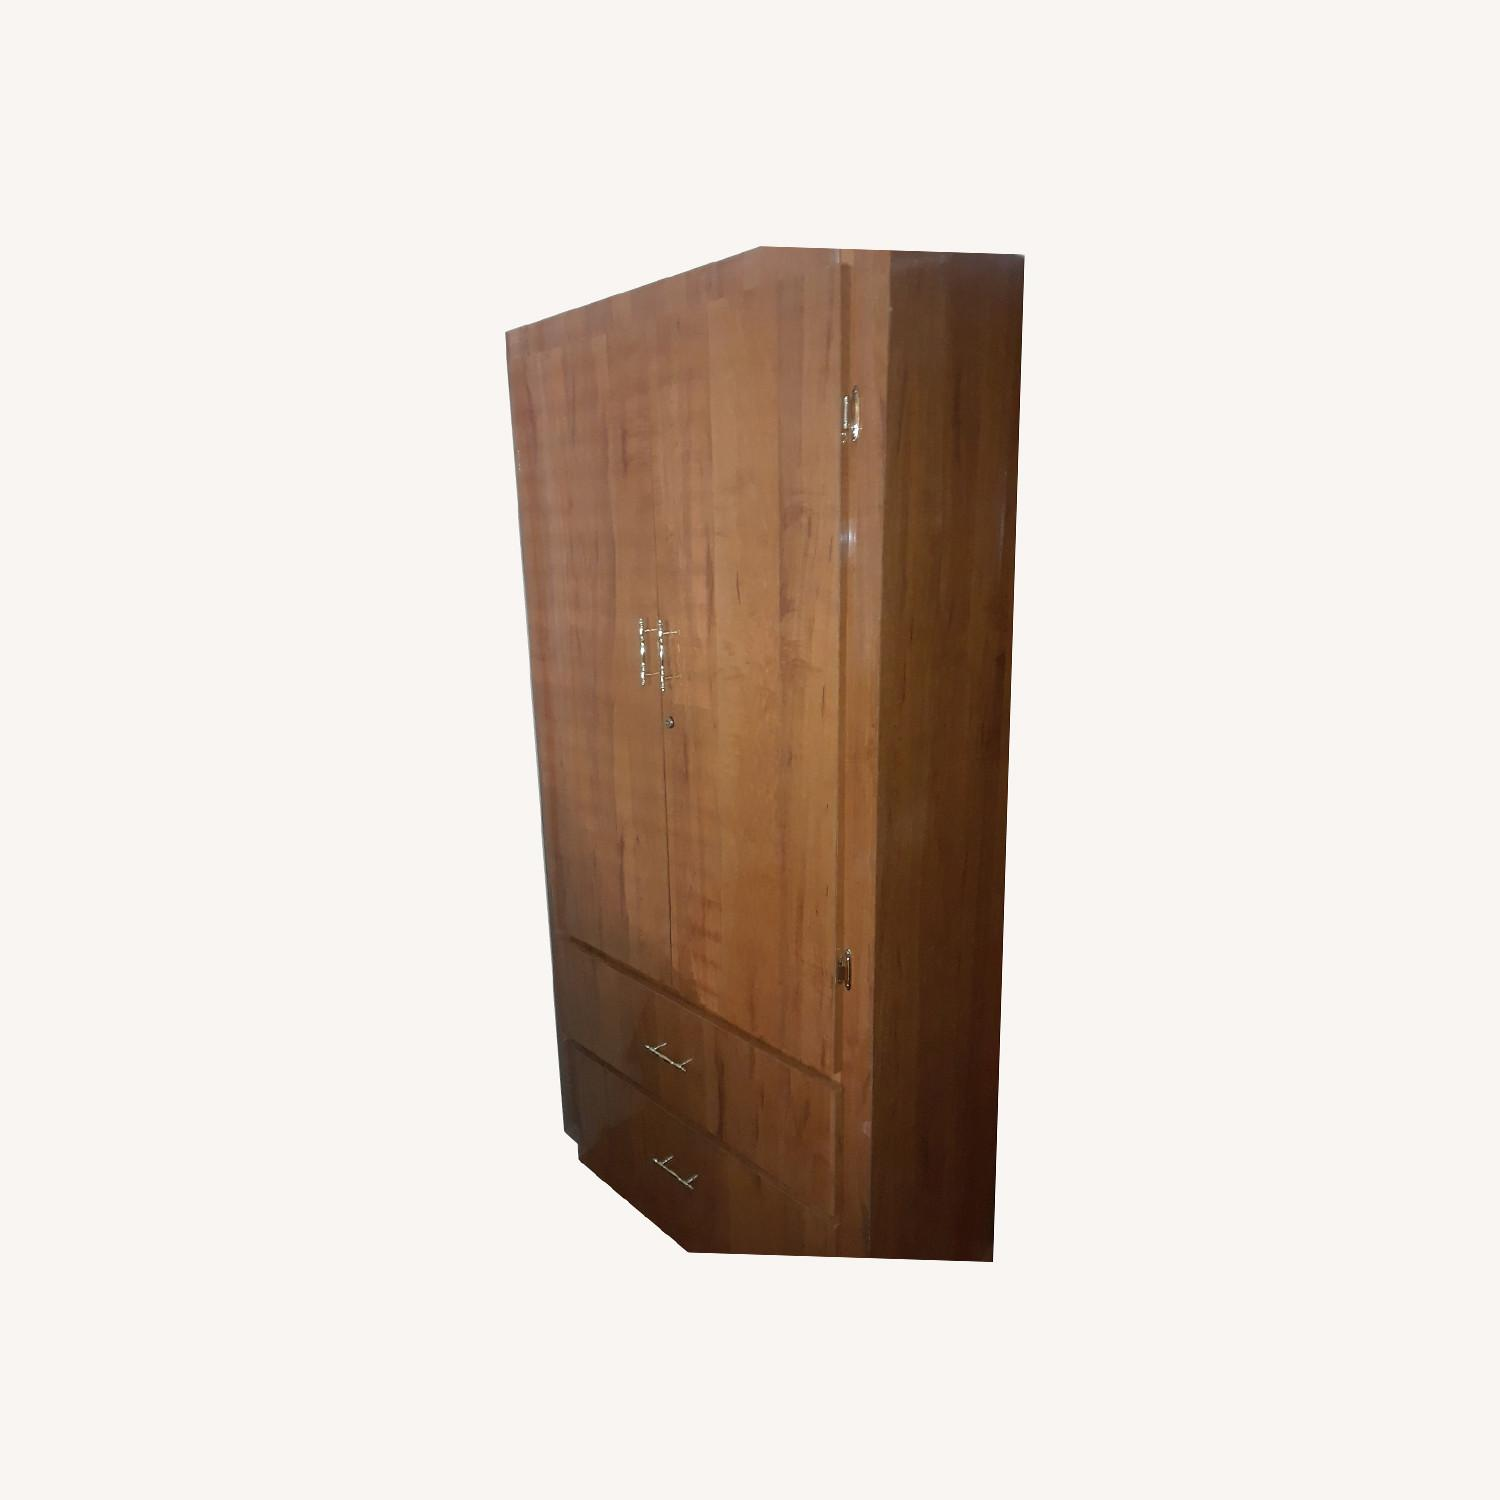 Armoire / Wardrobe with 2 Drawers - image-0